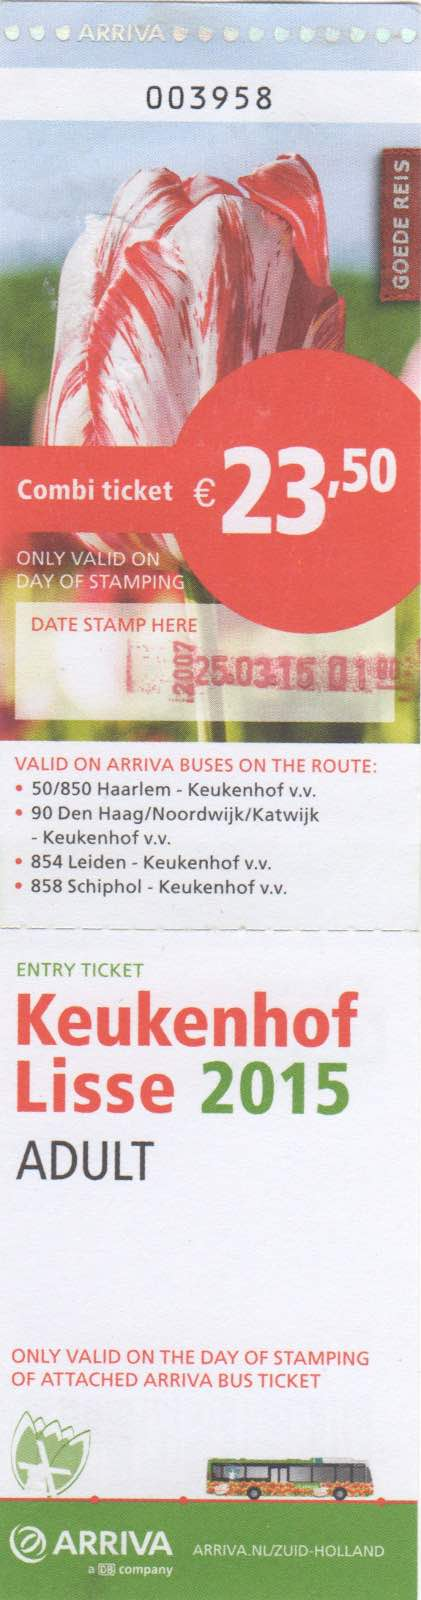 ticket for Arriva bus and entrance to Keukenhof (2015)